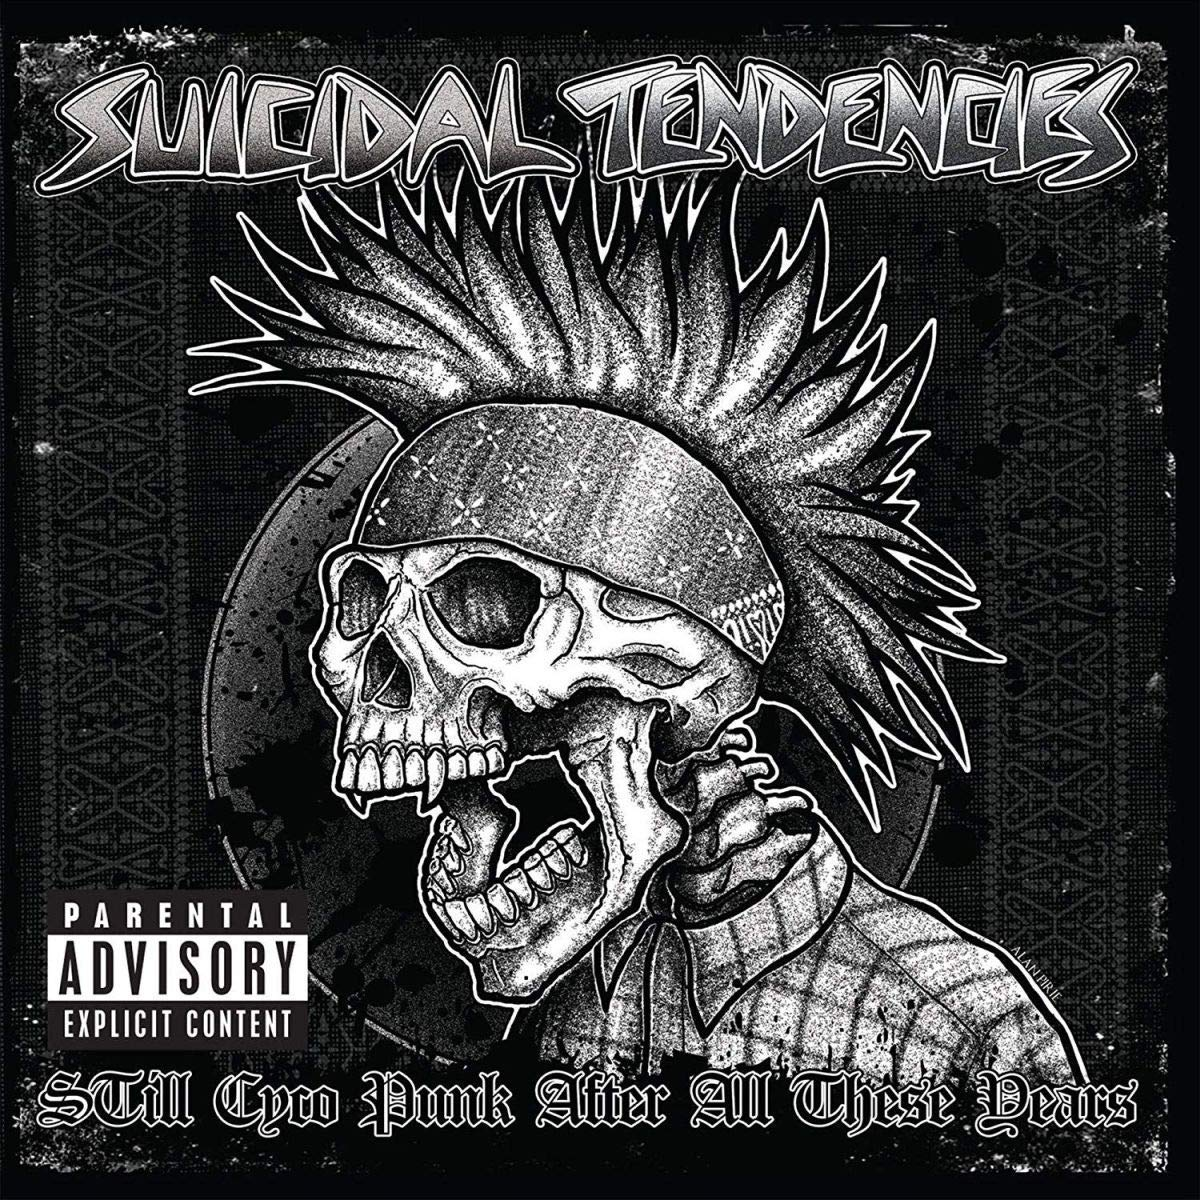 Suicidal Tendencies - Still Cyco Punk After All These Years [Opaque Gold LP]